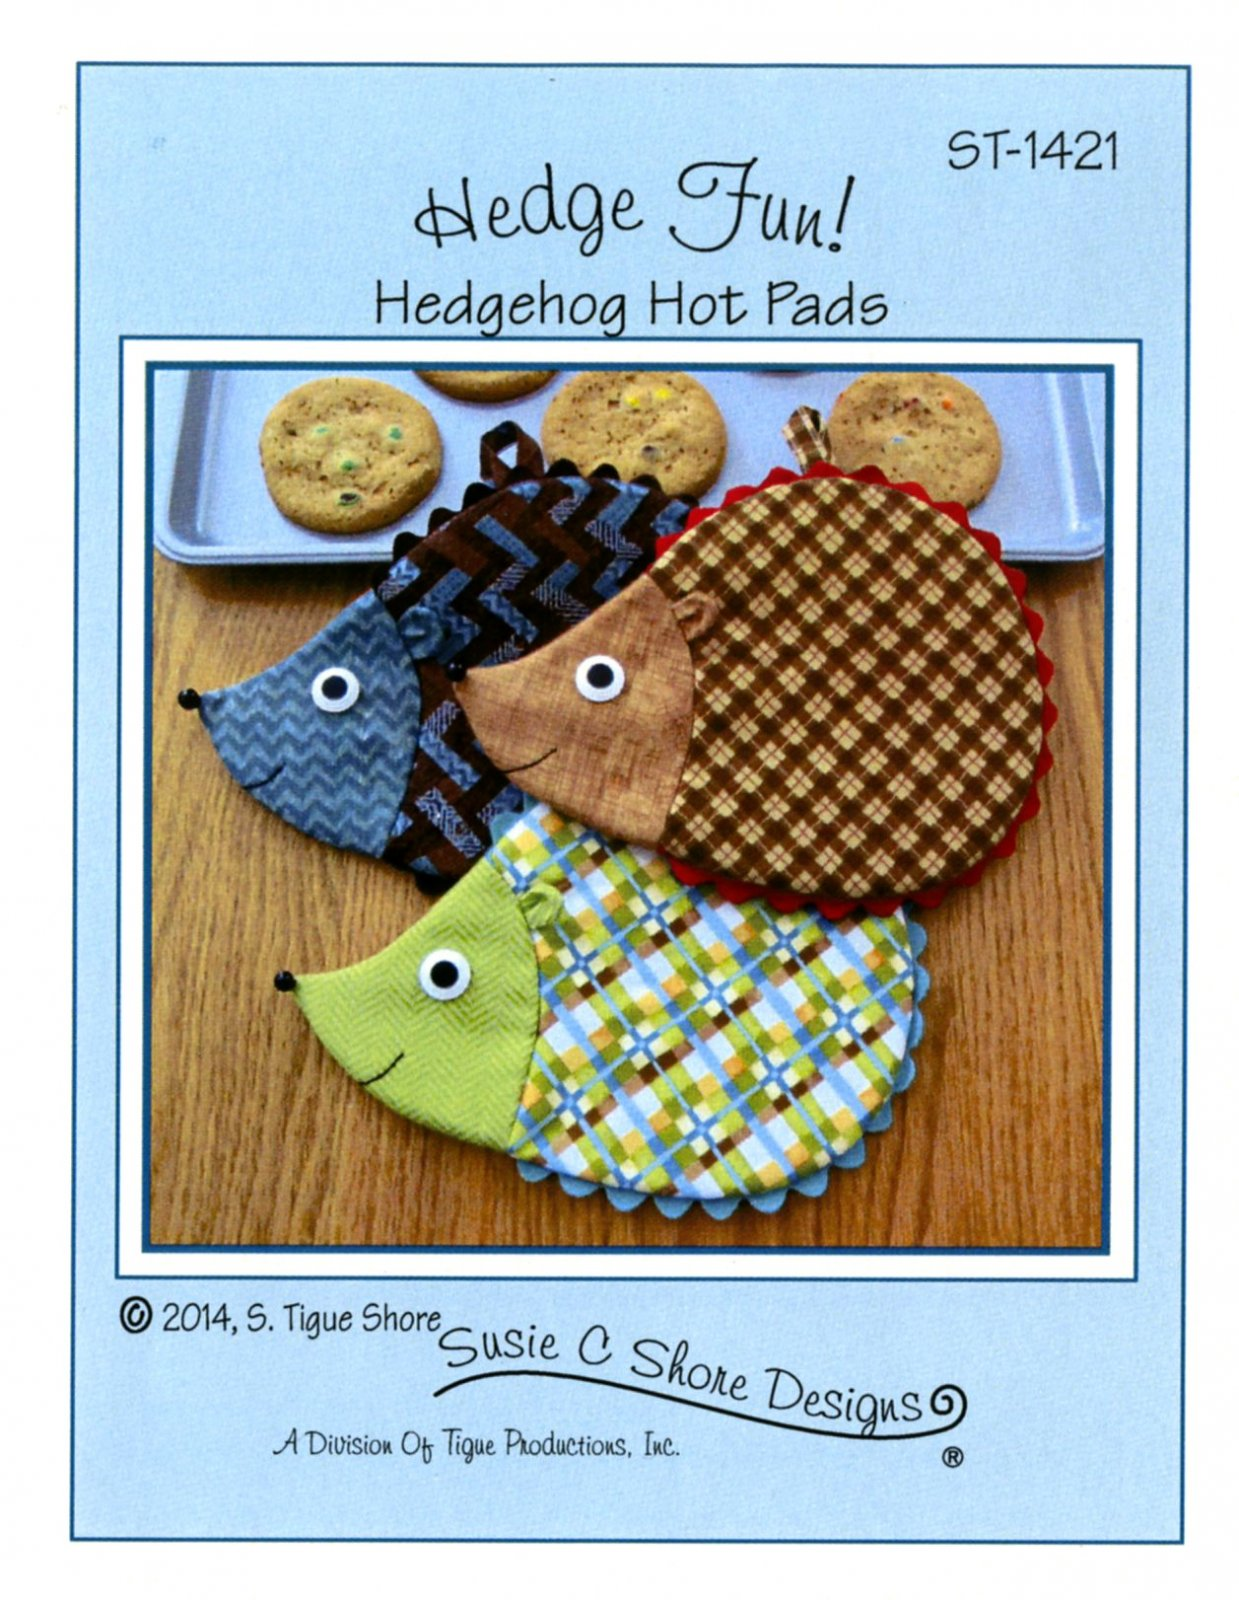 Hedge Fun - Hedgehog Hot Pads